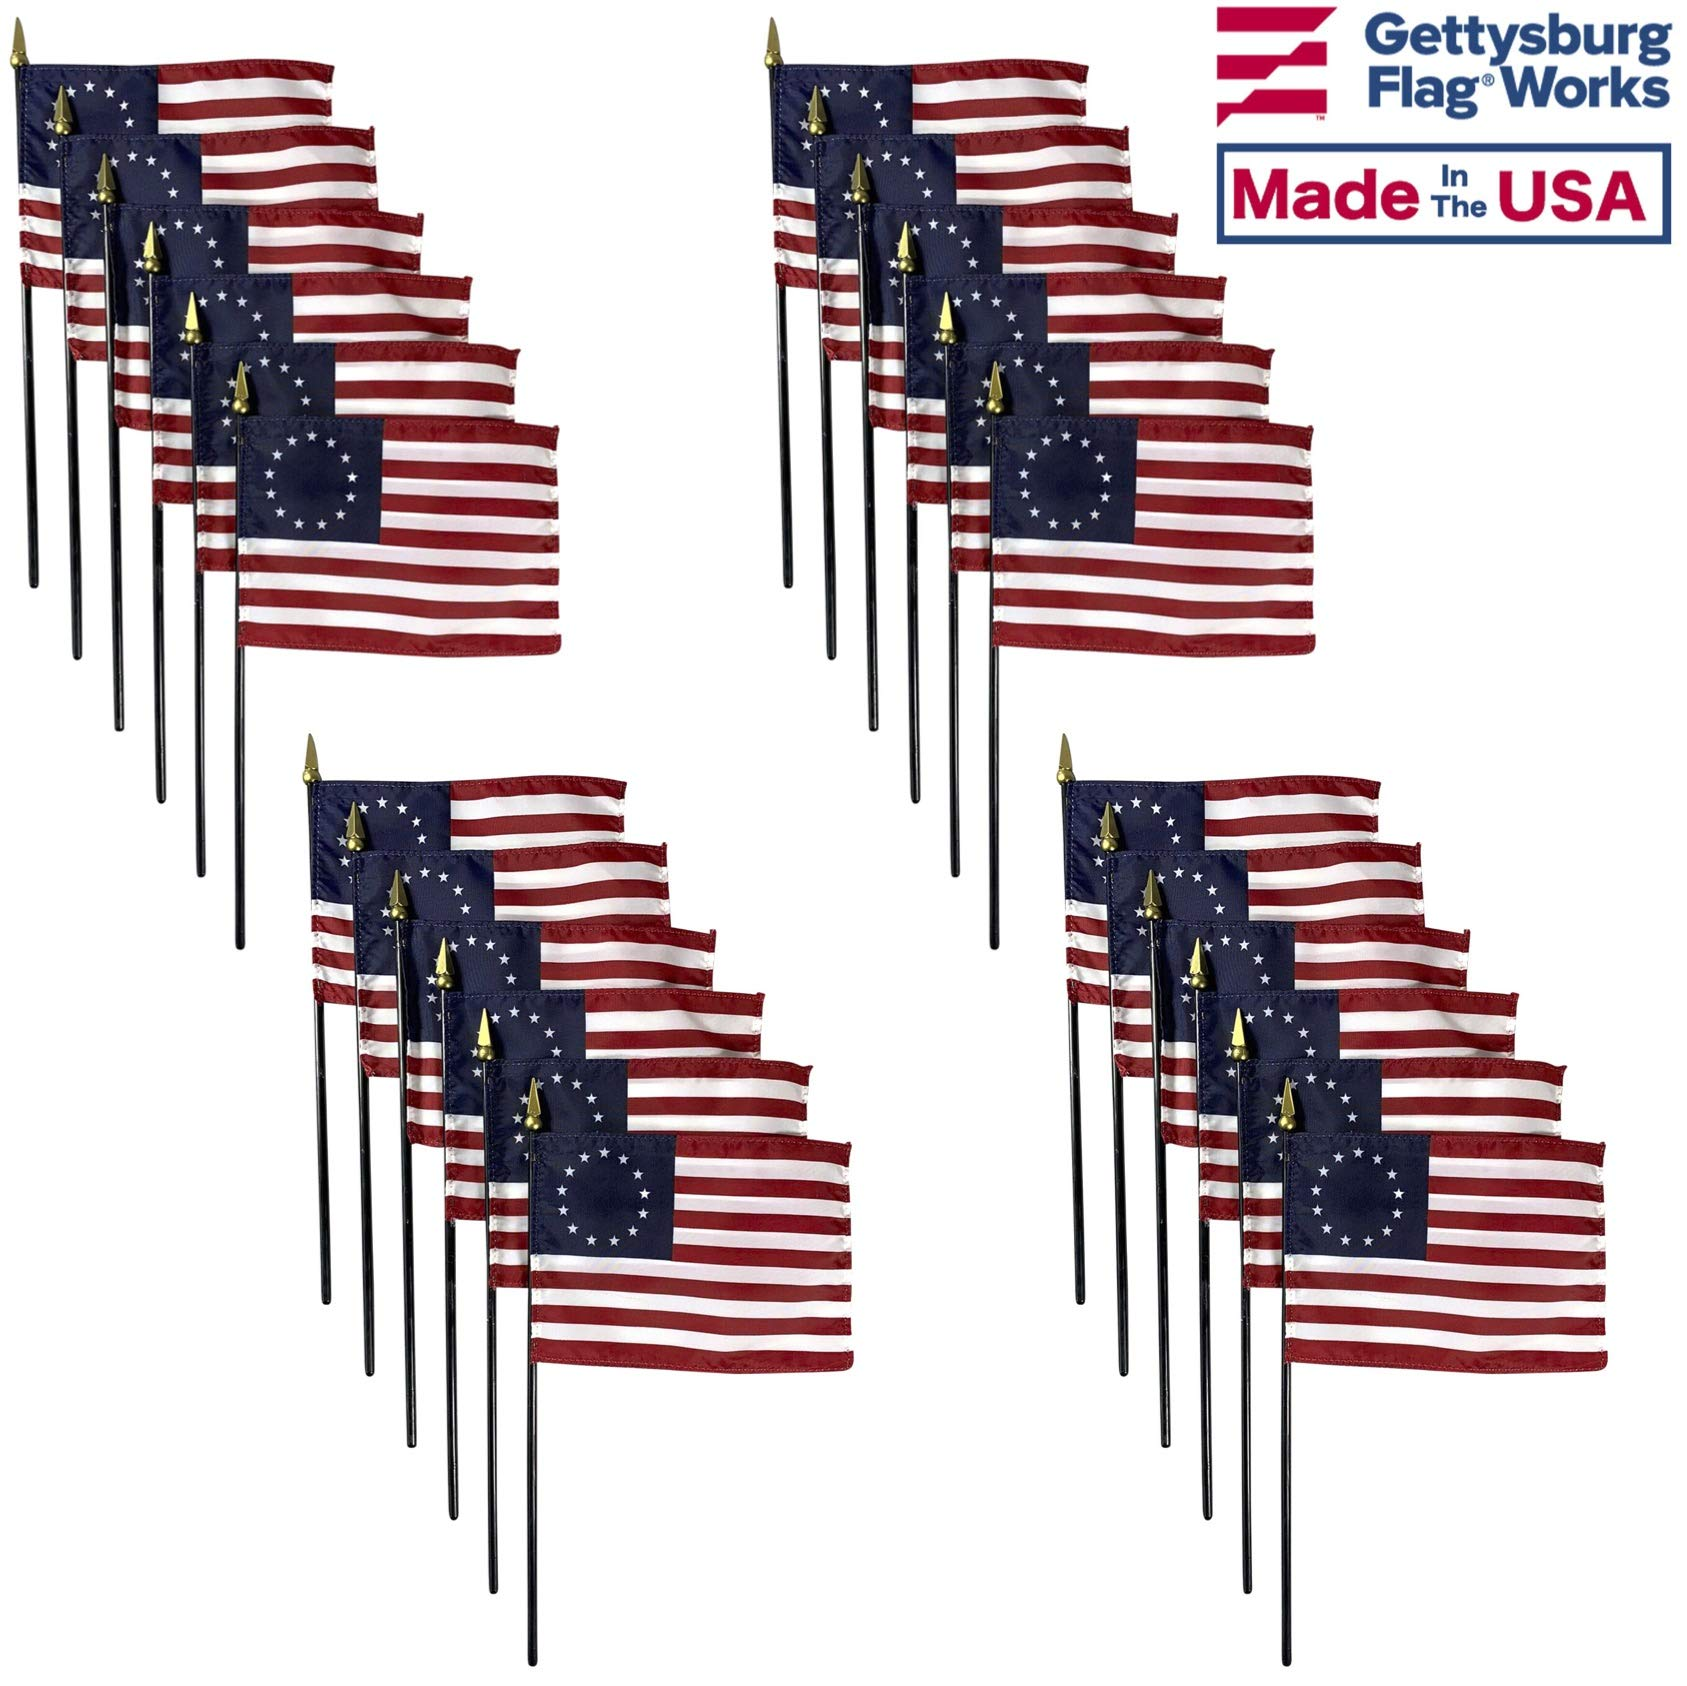 4x6 E-Gloss Betsy Ross Stick Flag - Flag Only - Qty 24 by Gettysburg Flag Works